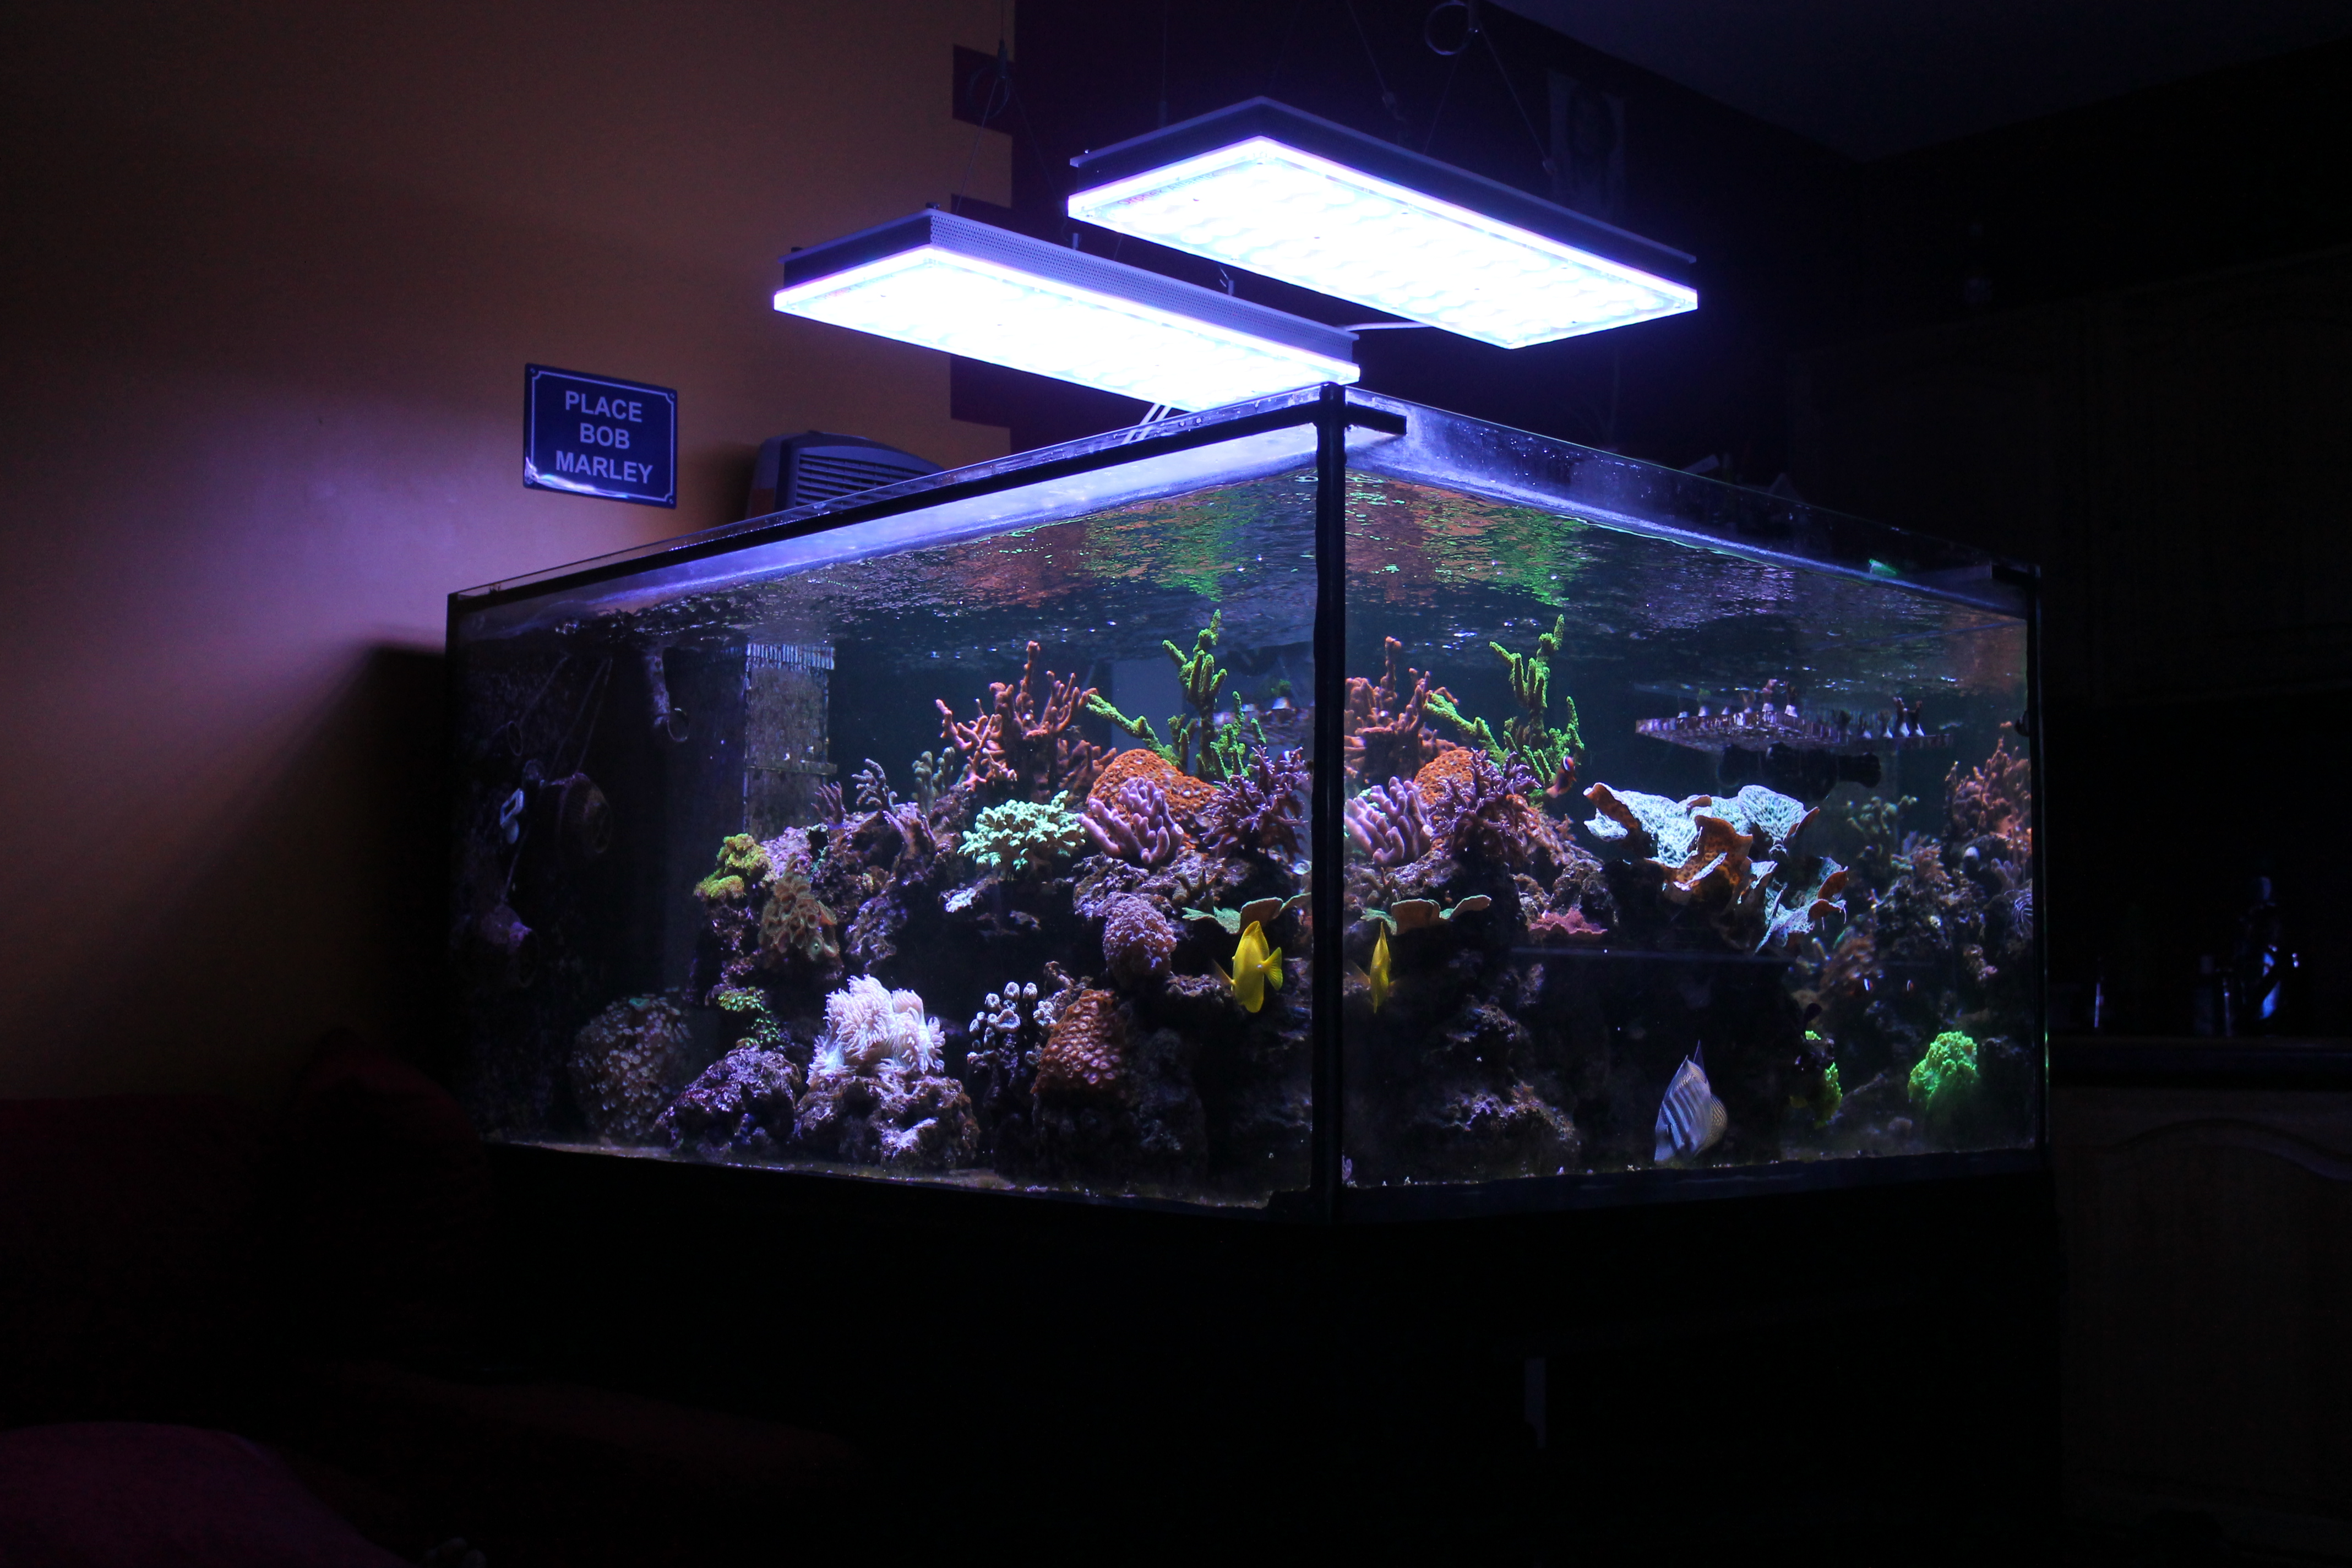 beste led aquariumlamp voor zoutwatertank frankrijk orphek aquarium led verlichting. Black Bedroom Furniture Sets. Home Design Ideas